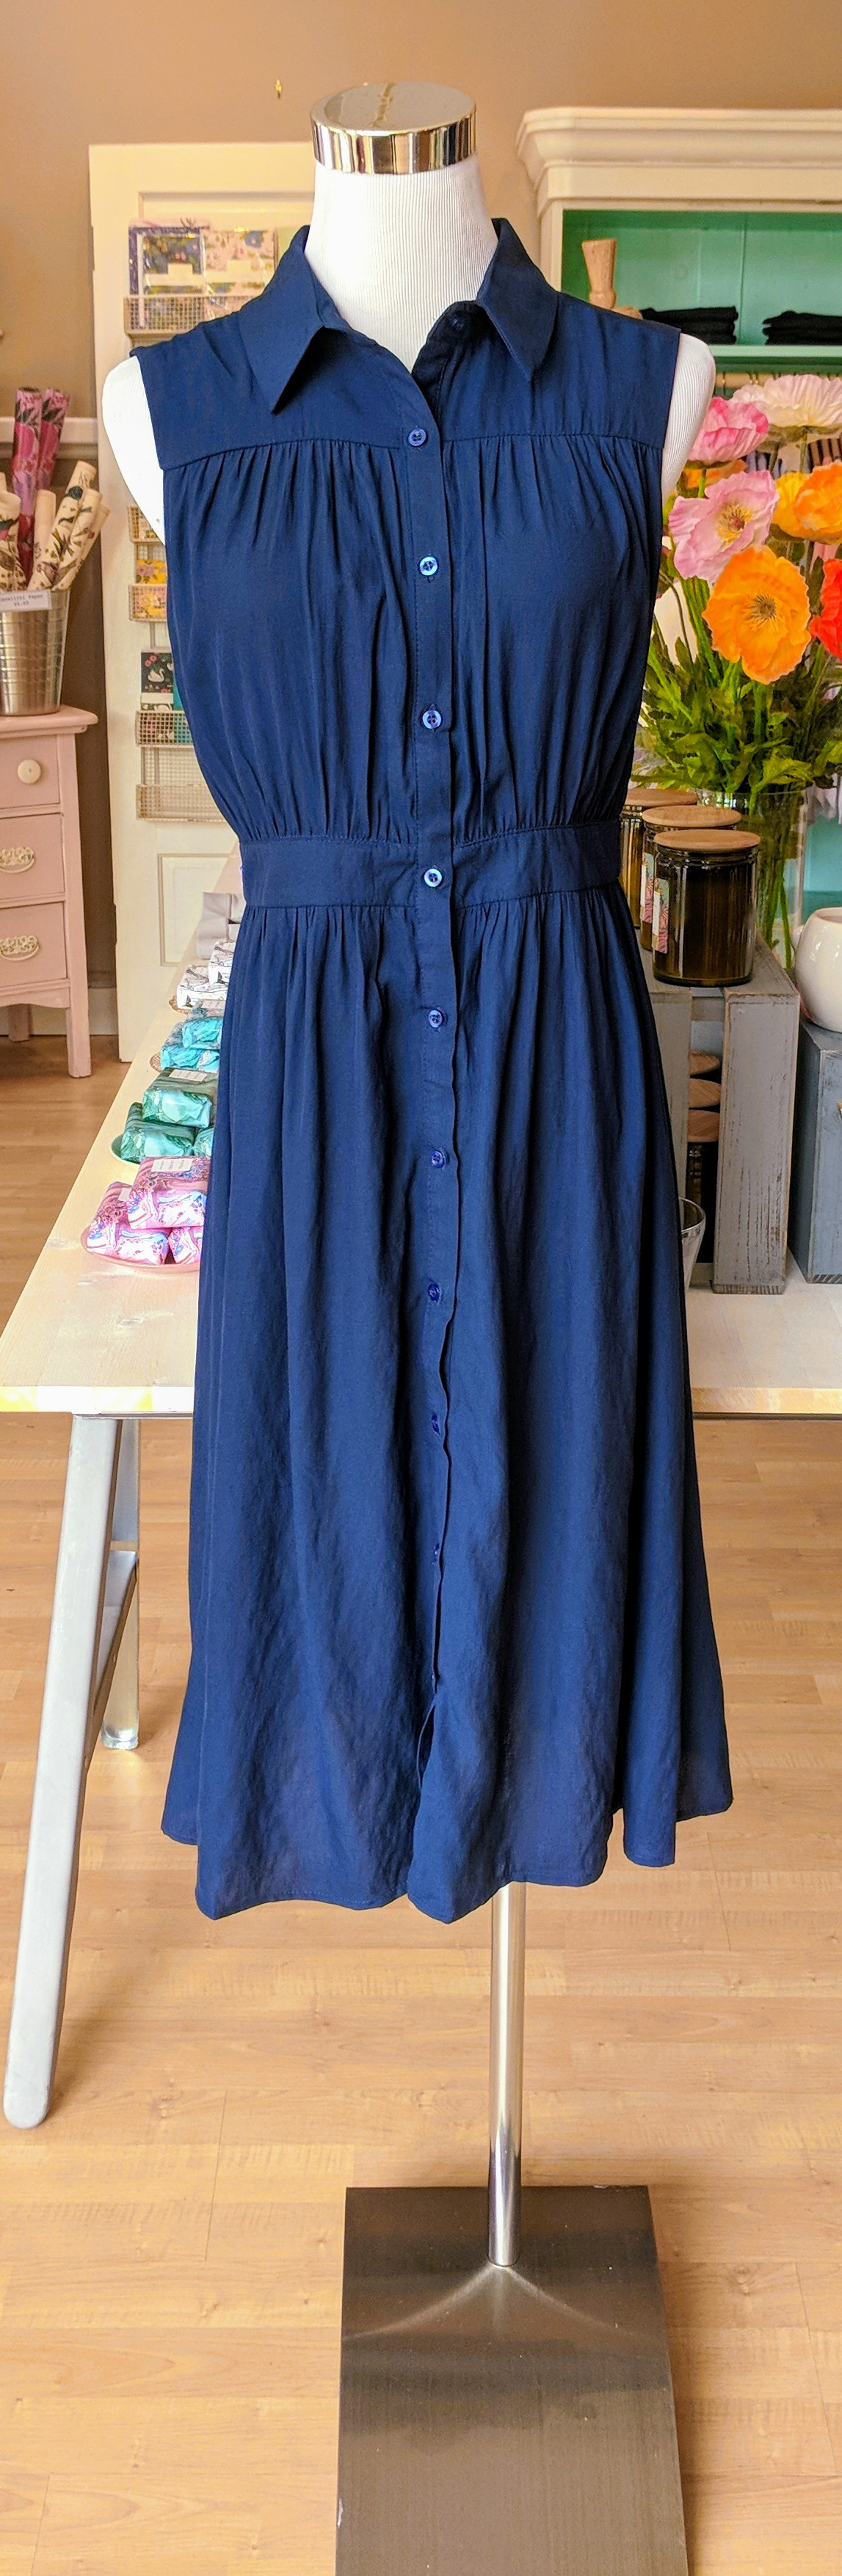 Navy collared midi dress with button up front.